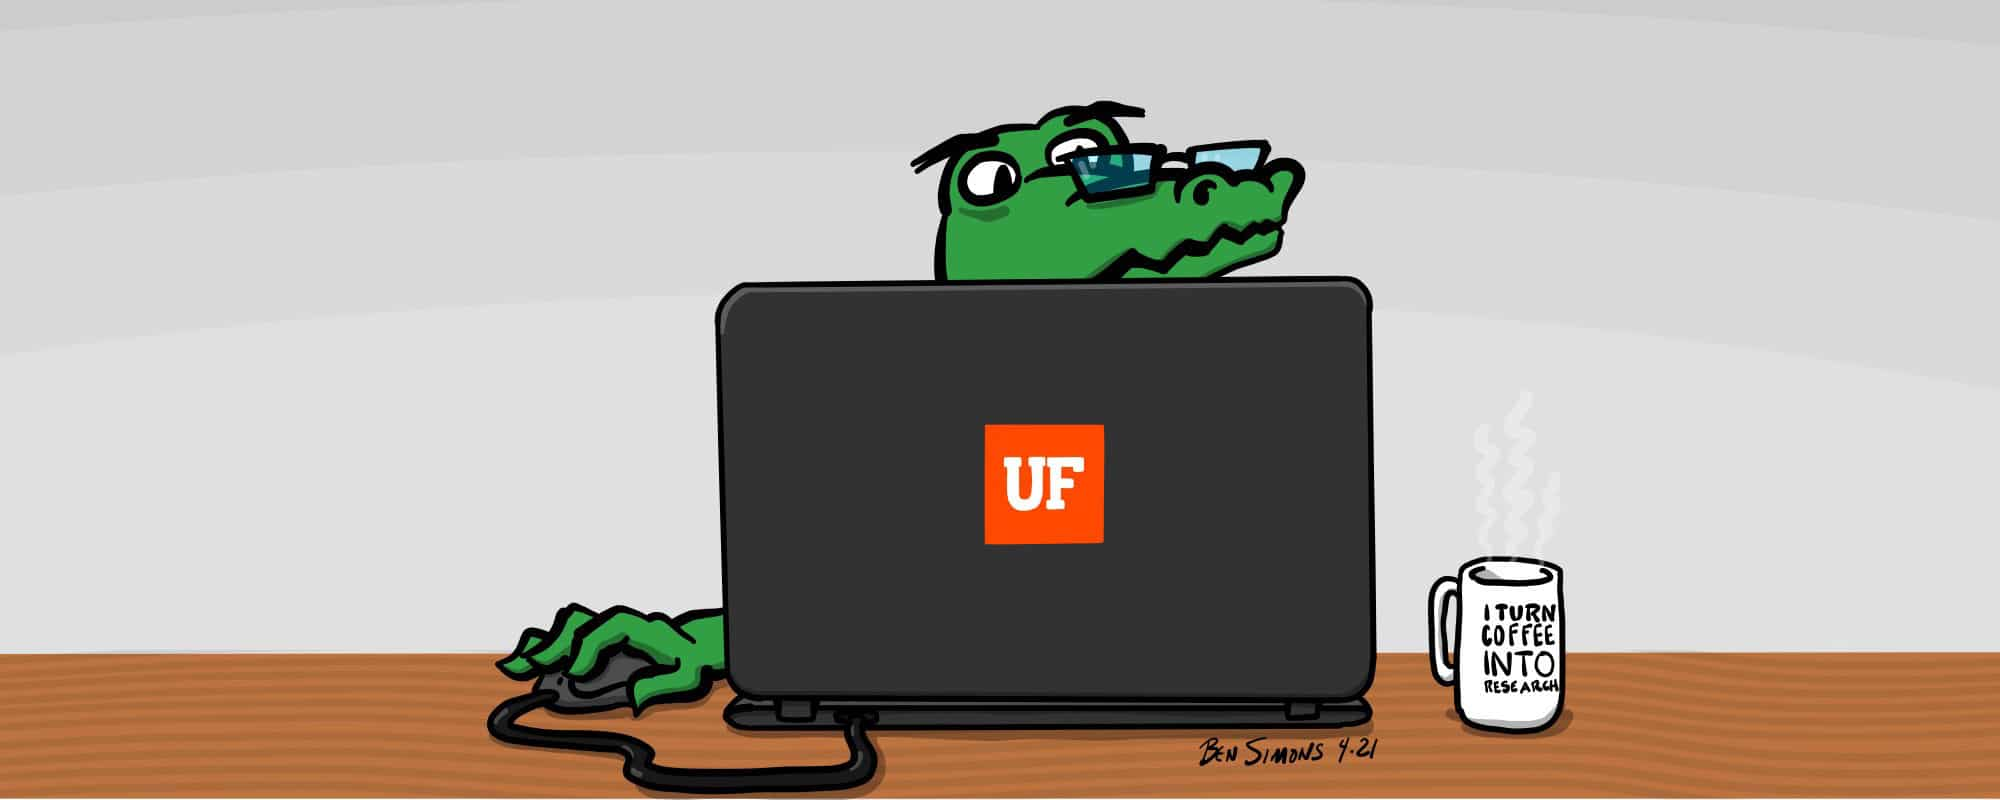 Illustration of a gator working on a laptop with a UF sticker on it, a coffee mug nearby says I turn coffee into research